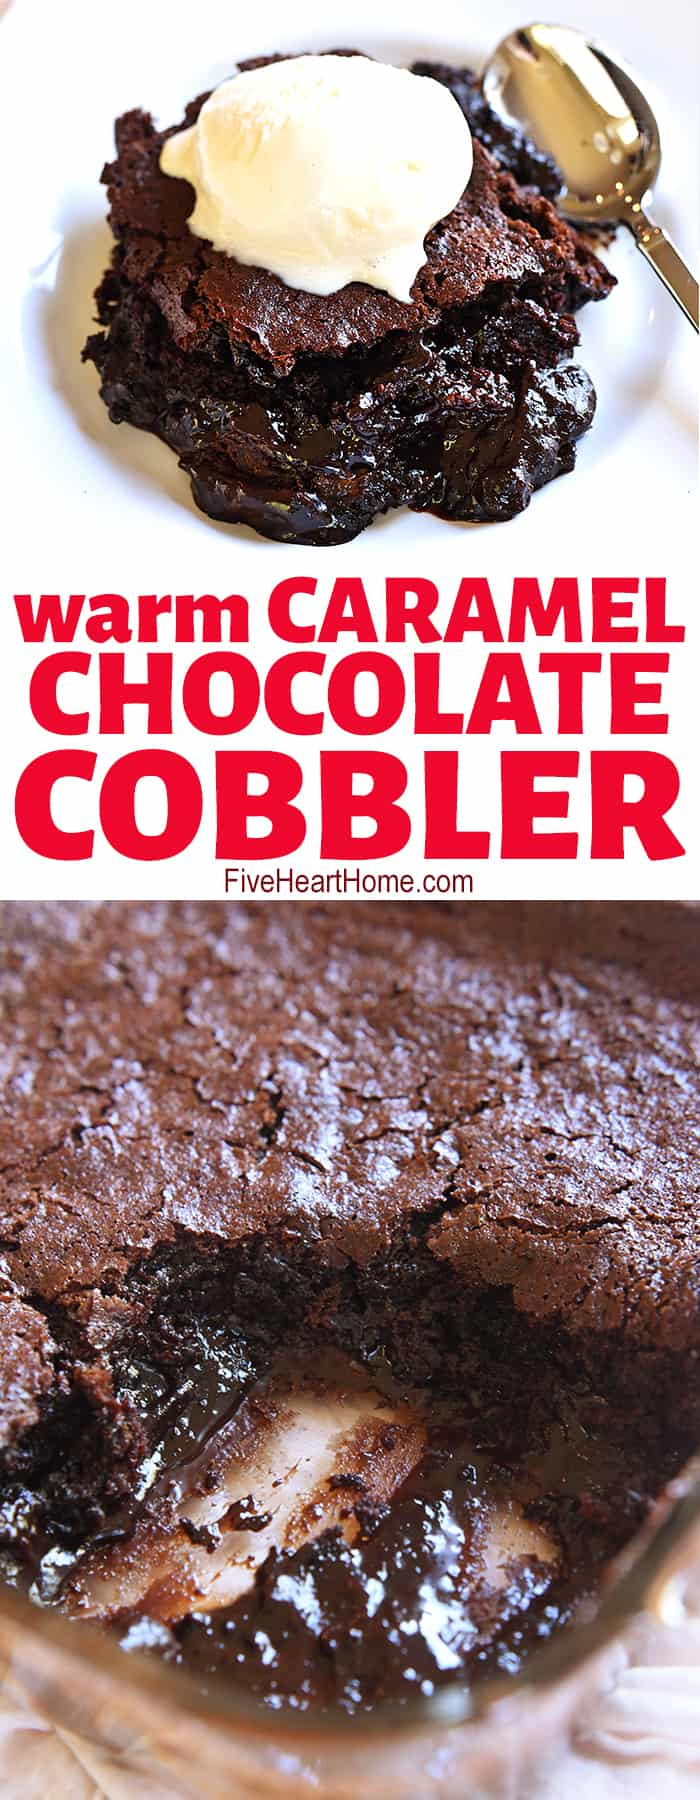 Warm Caramel Chocolate Cobbler collage with text